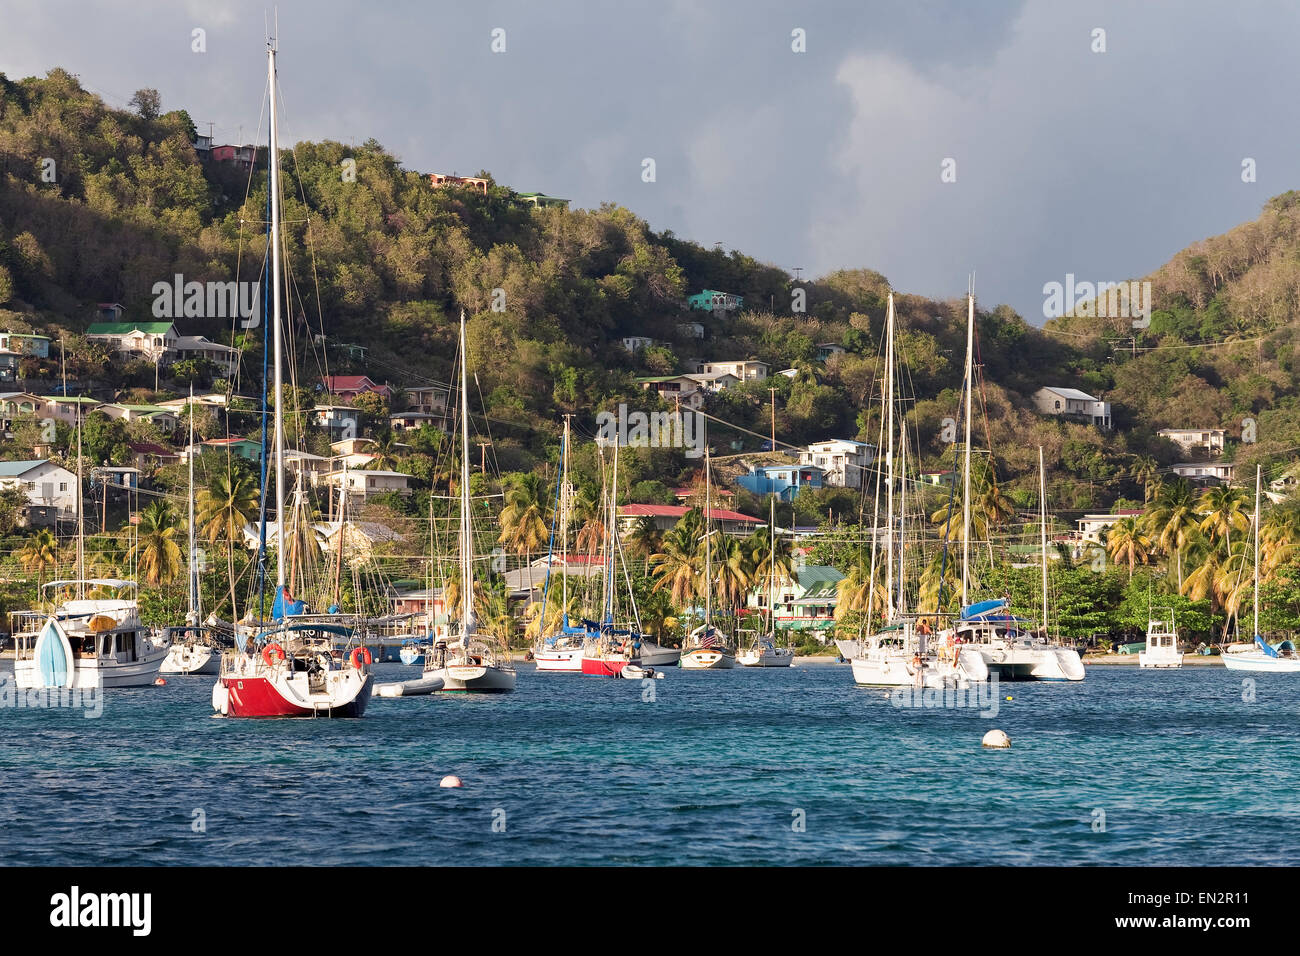 Moored Sailboats, Bequia, Saint Vincent and the Grenadines - Stock Image